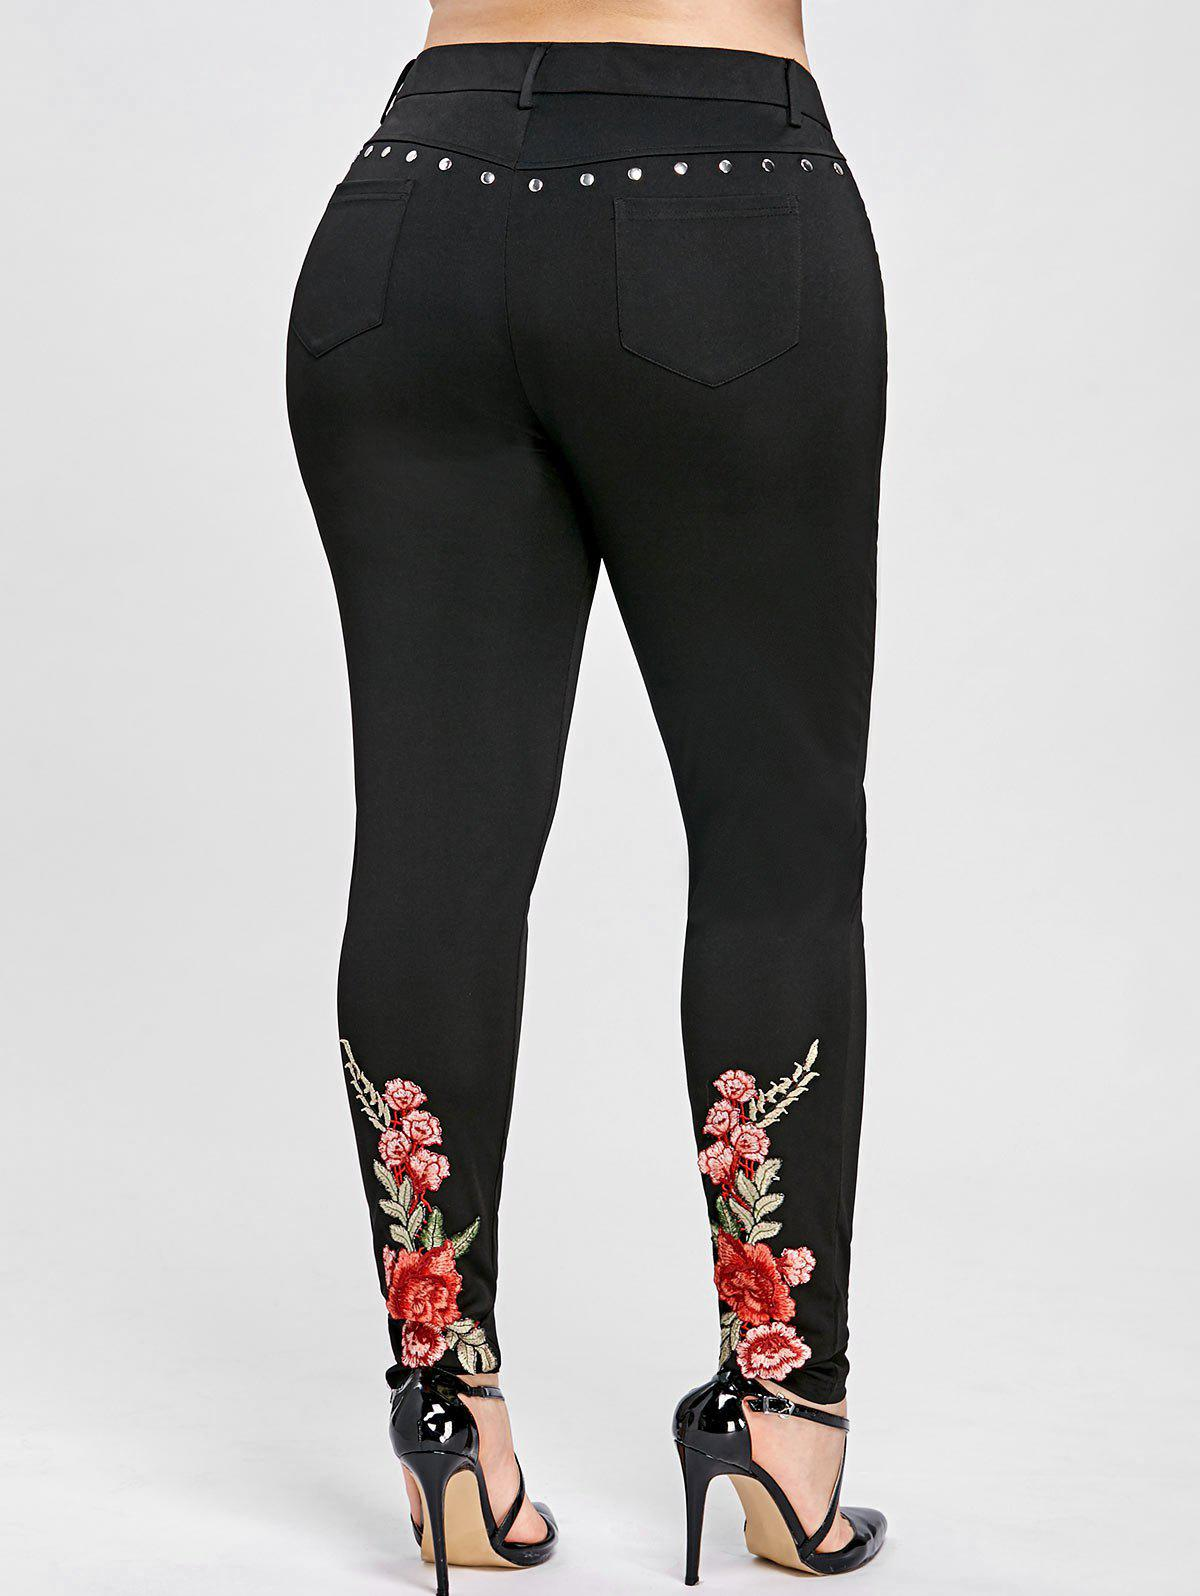 Sale Floral Embroidery Rivet Plus Size Pencil Pants